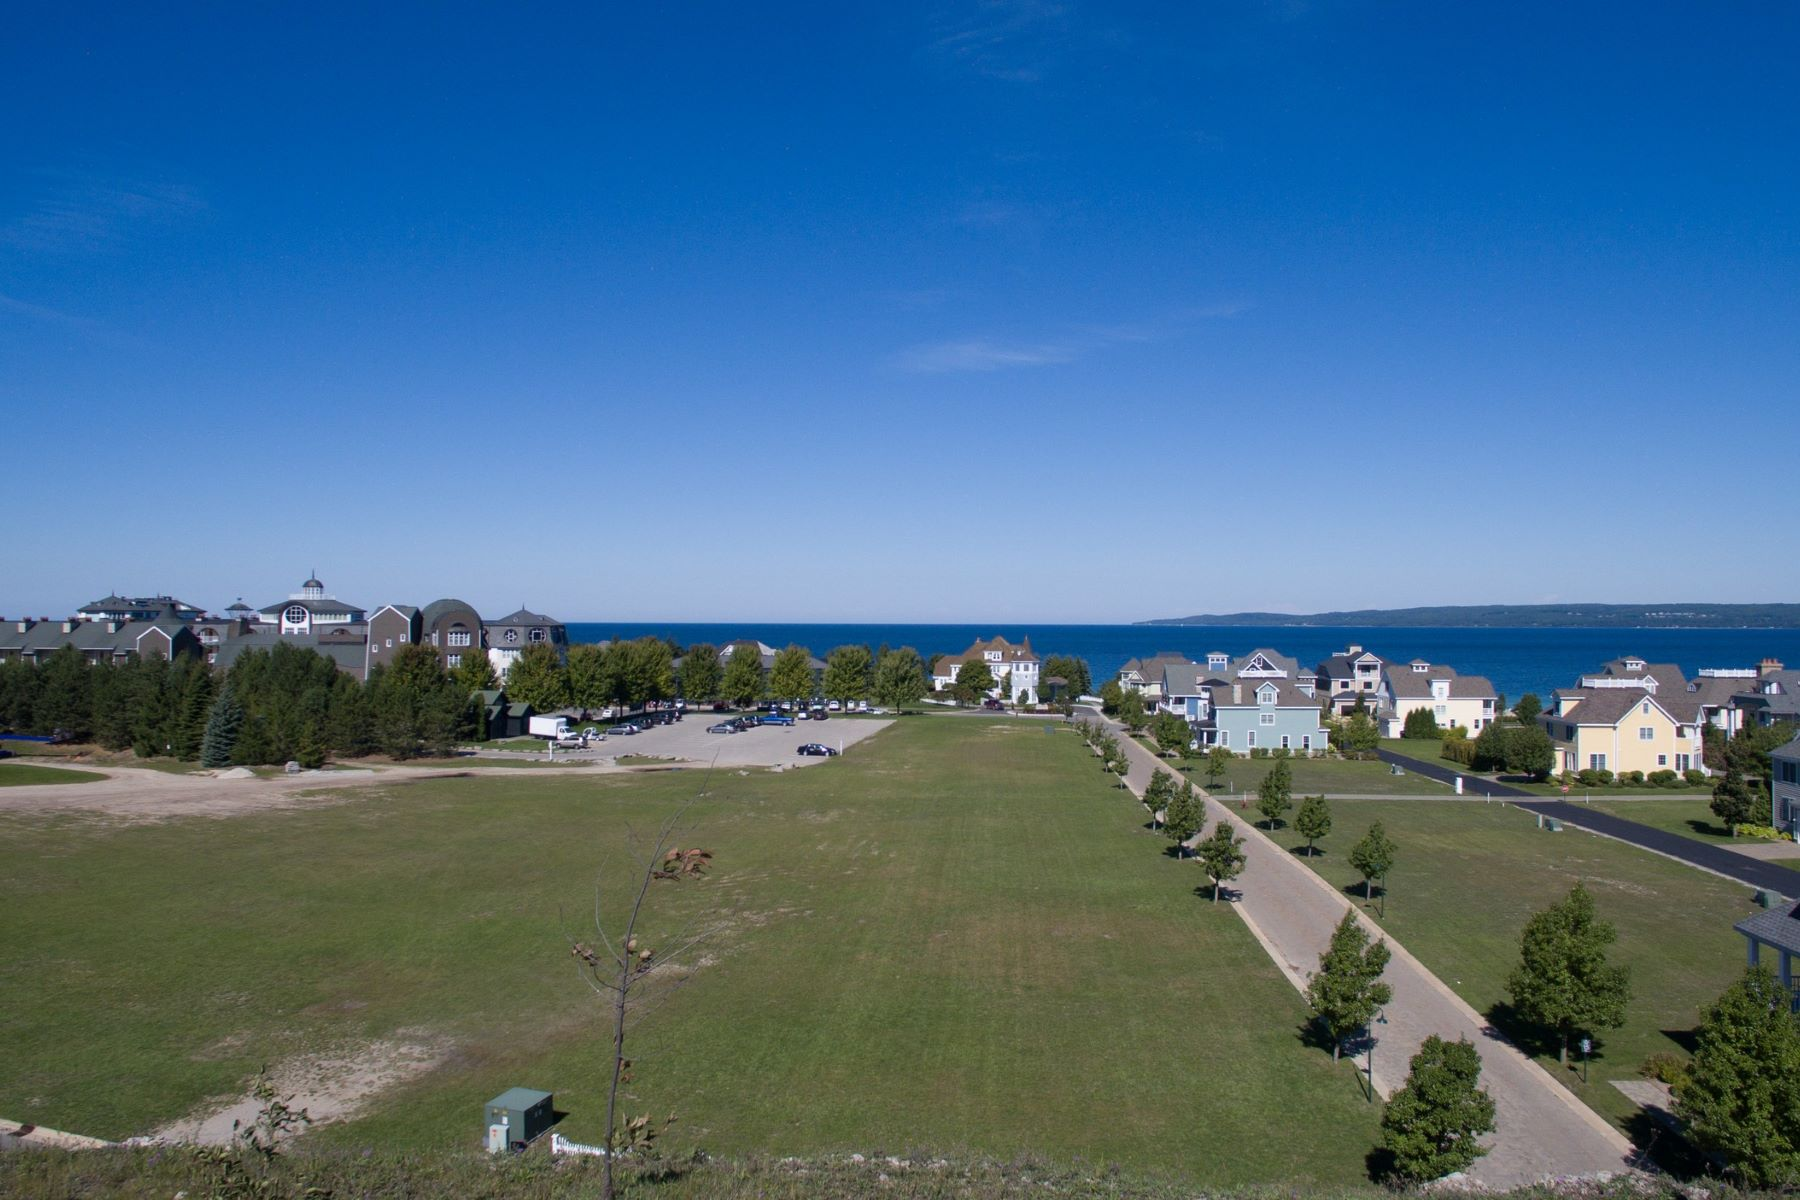 Land for Sale at Unit 2, The Ridge TBD Cliffs Drive, Unit 2, The Ridge Bay Harbor, Michigan, 49770 United States